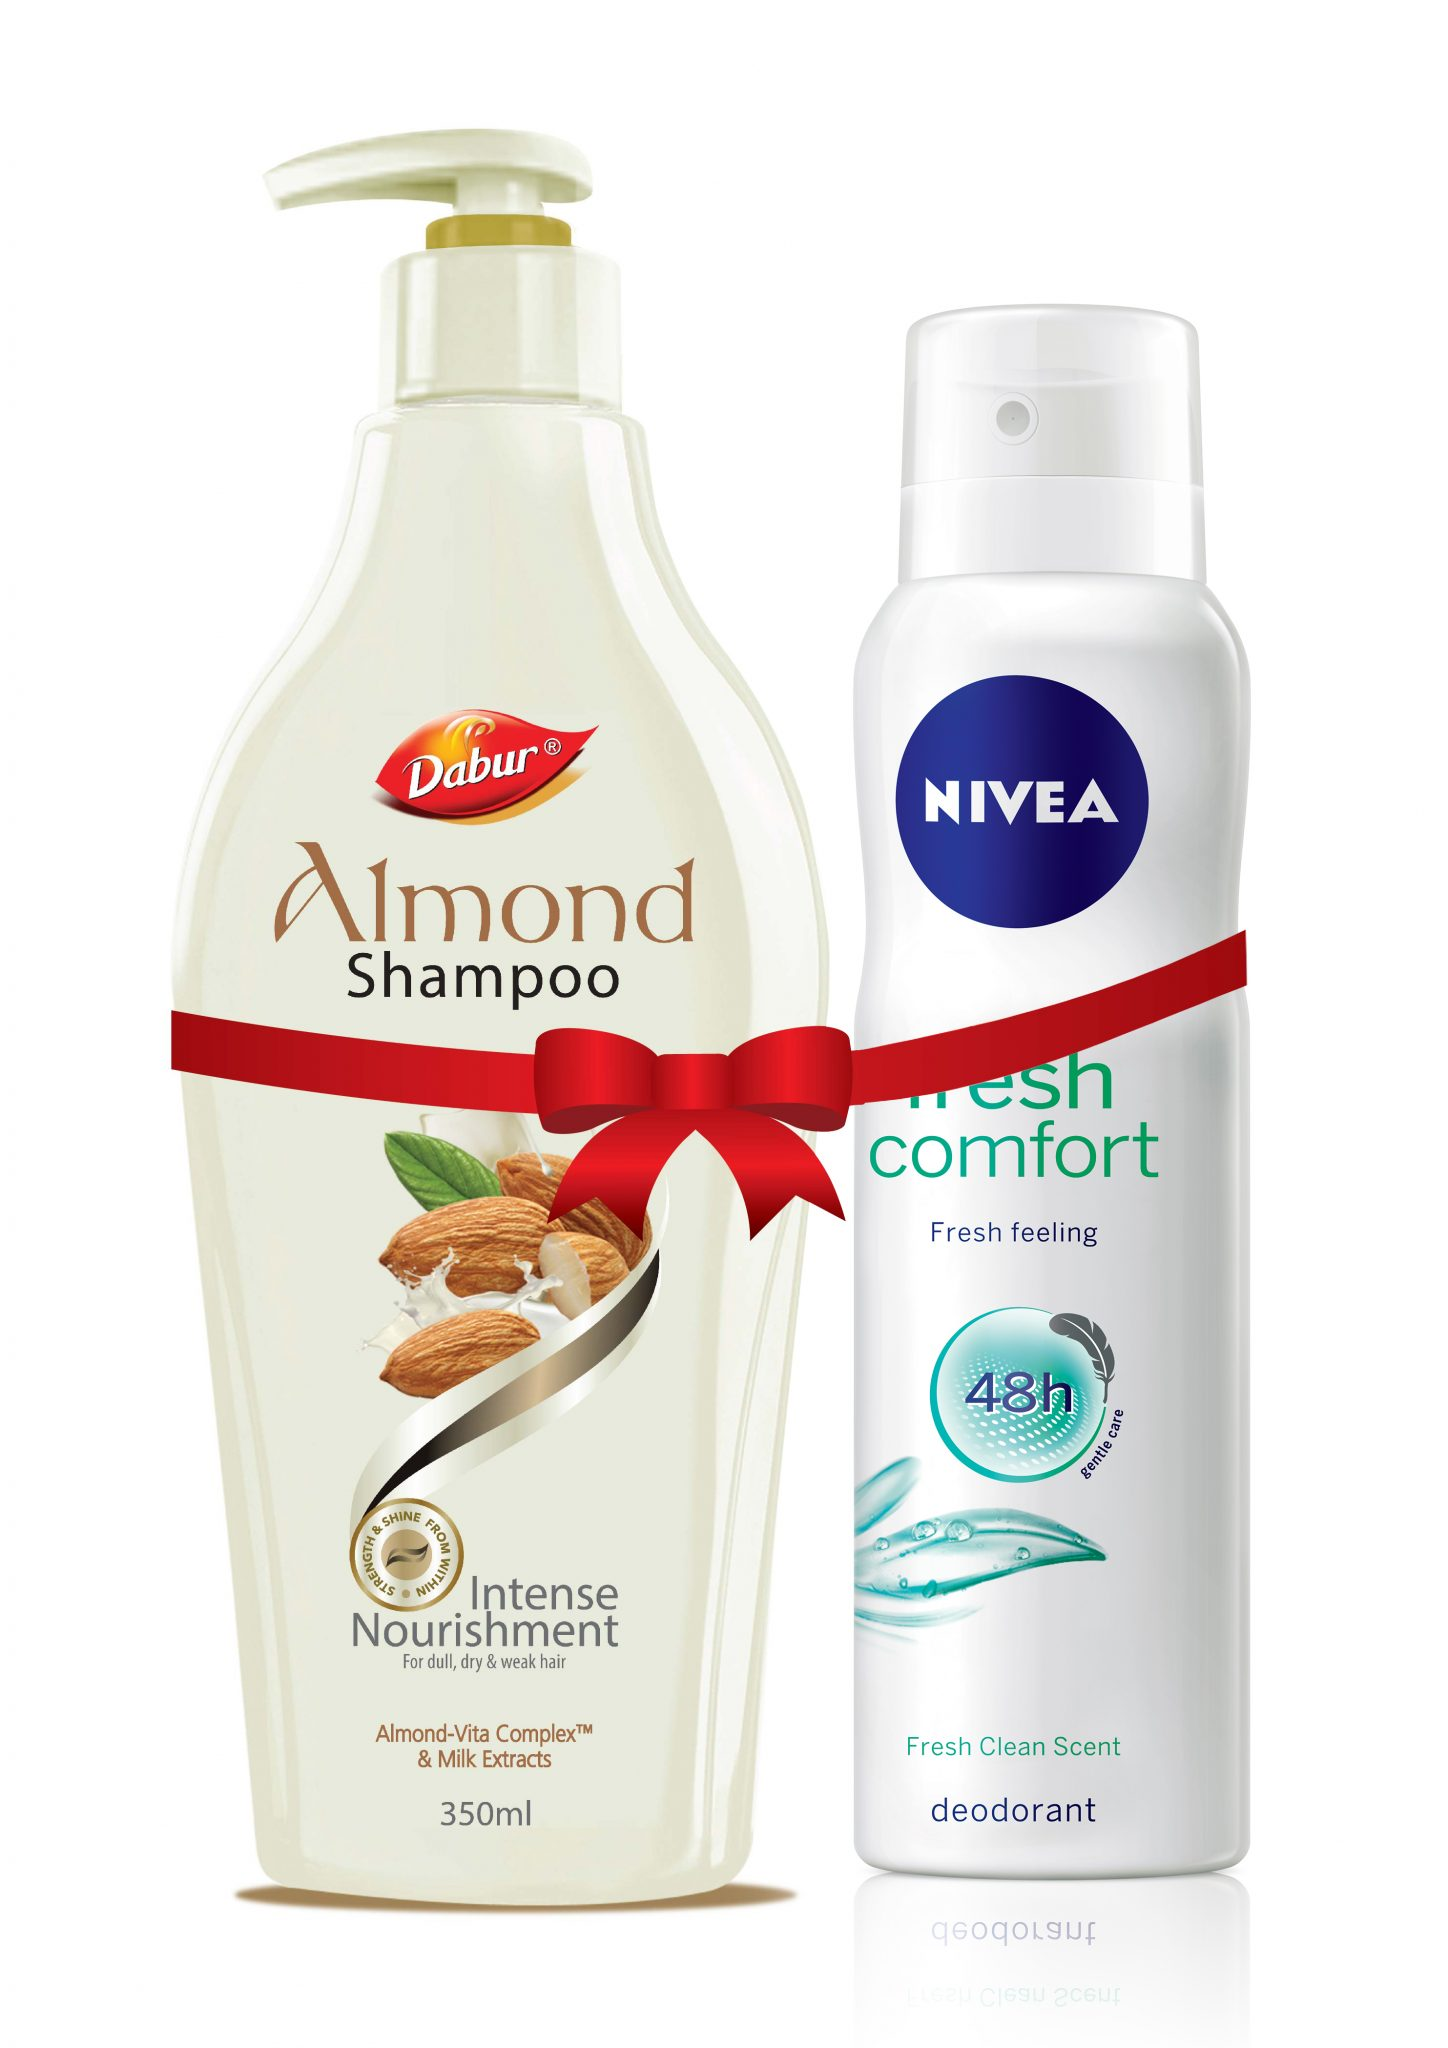 Dabur Almond Shampoo 350 ml with Free Nivea Deo worth Rs 190 for Rs 242